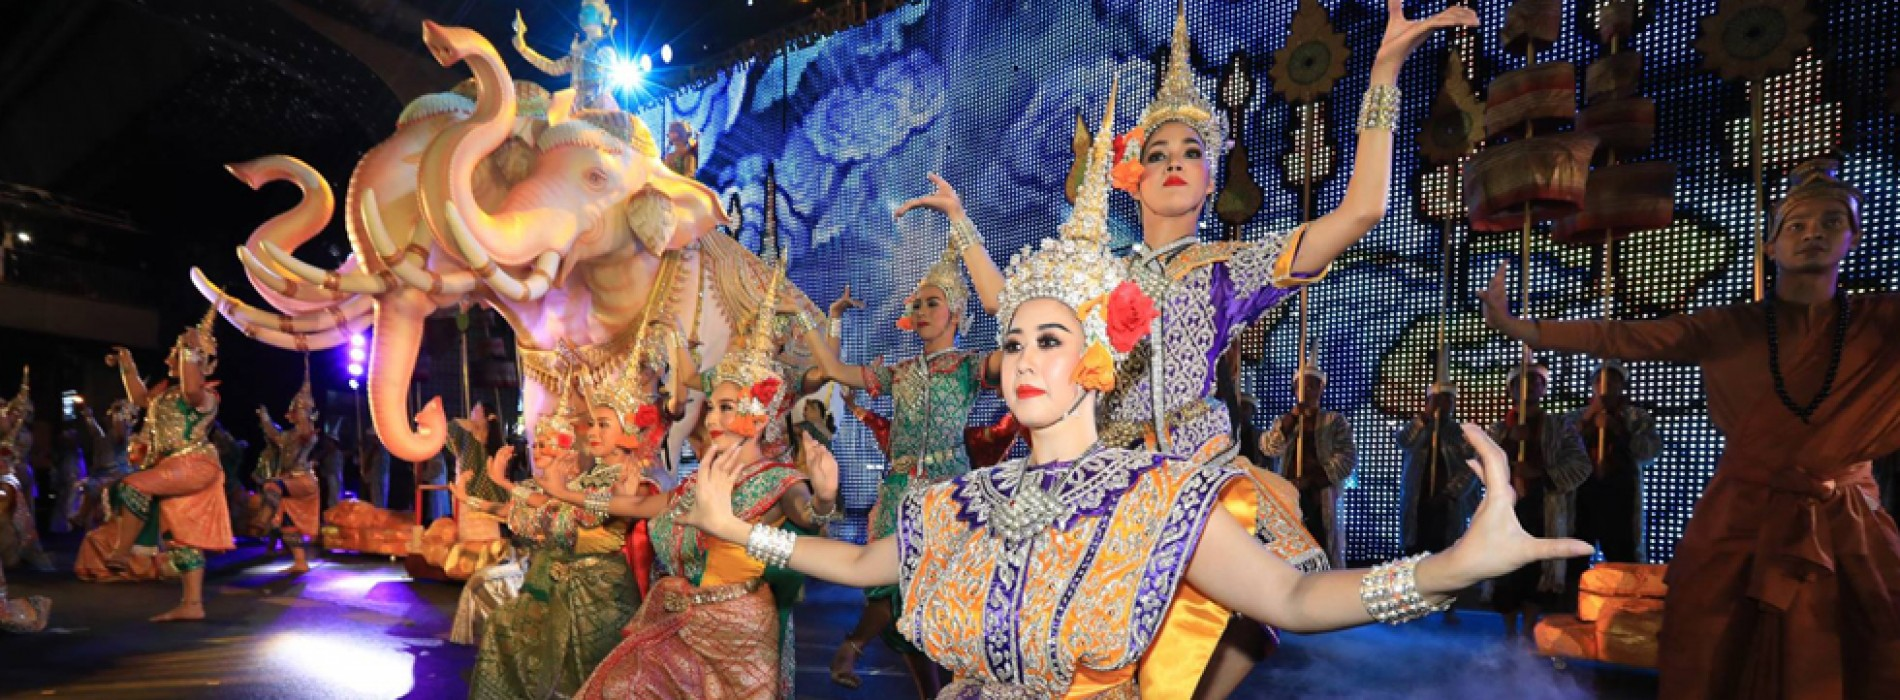 Over 300 travel agents, media discovered New Shades of Thailand on Mega Fam Trip